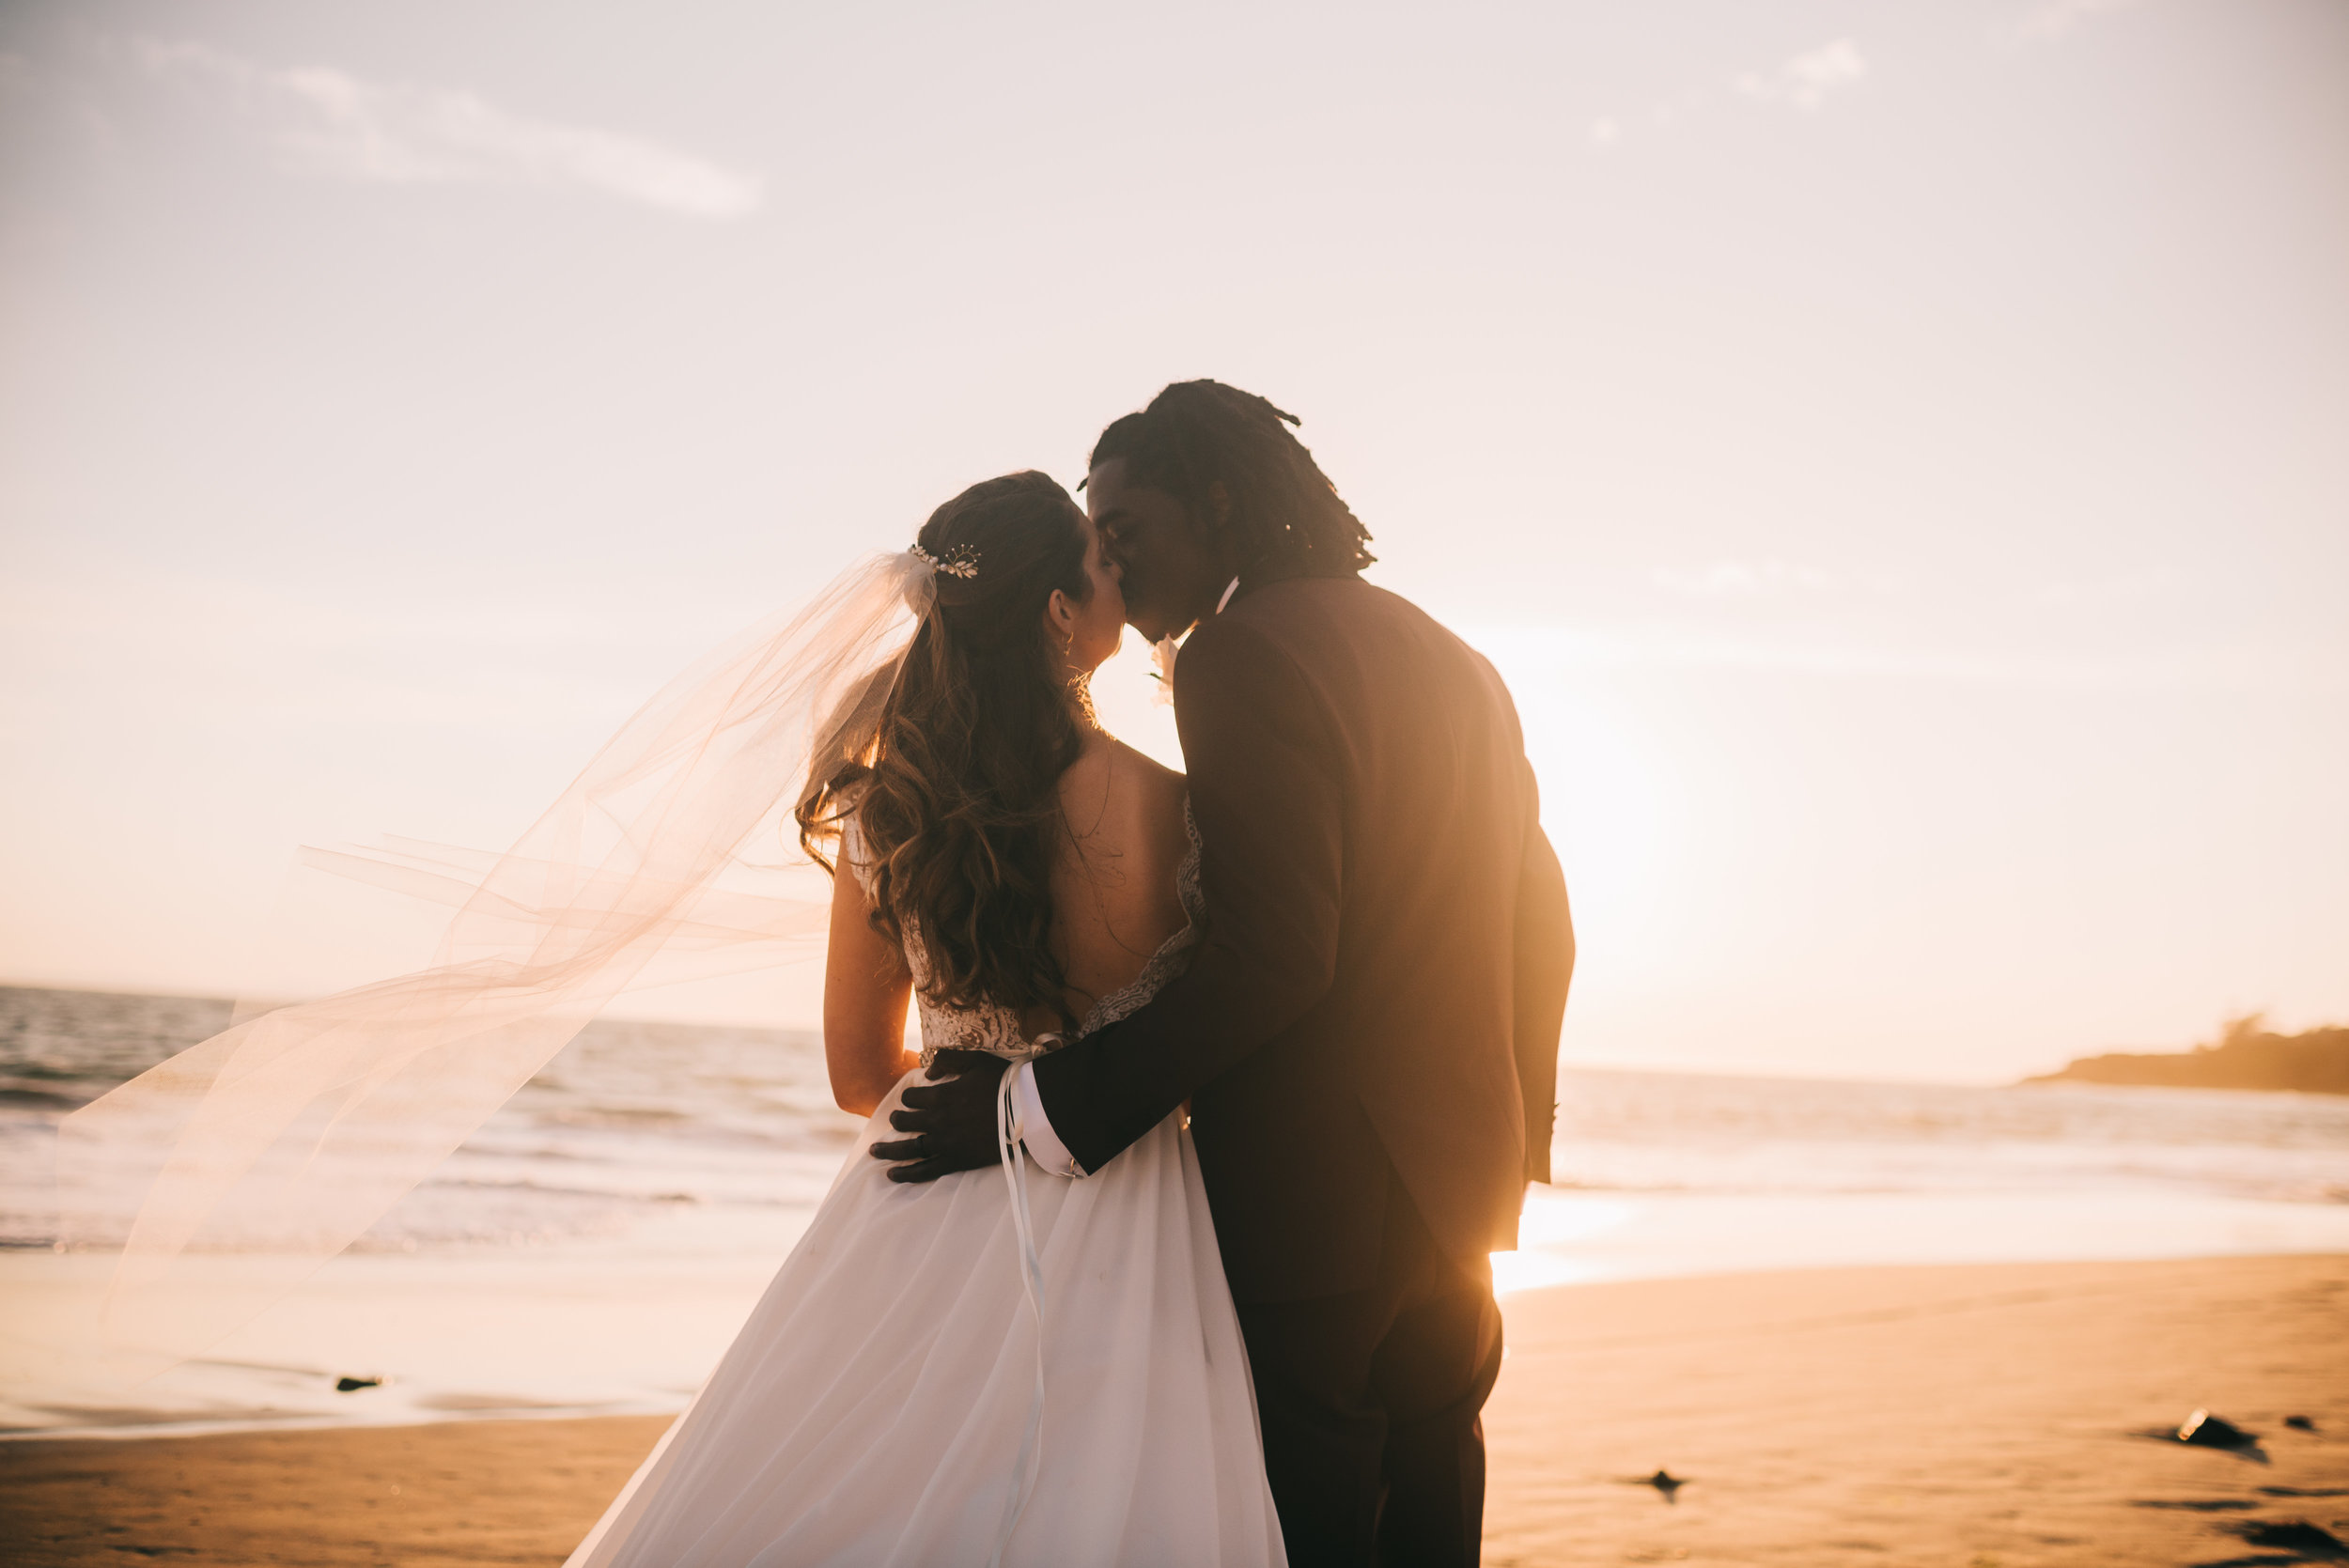 southern california laguna beach salt creek beach los angeles socal boho bay area akland san francisco engagement wedding nontraditional fun creative eclectic photographer magic-937.jpg